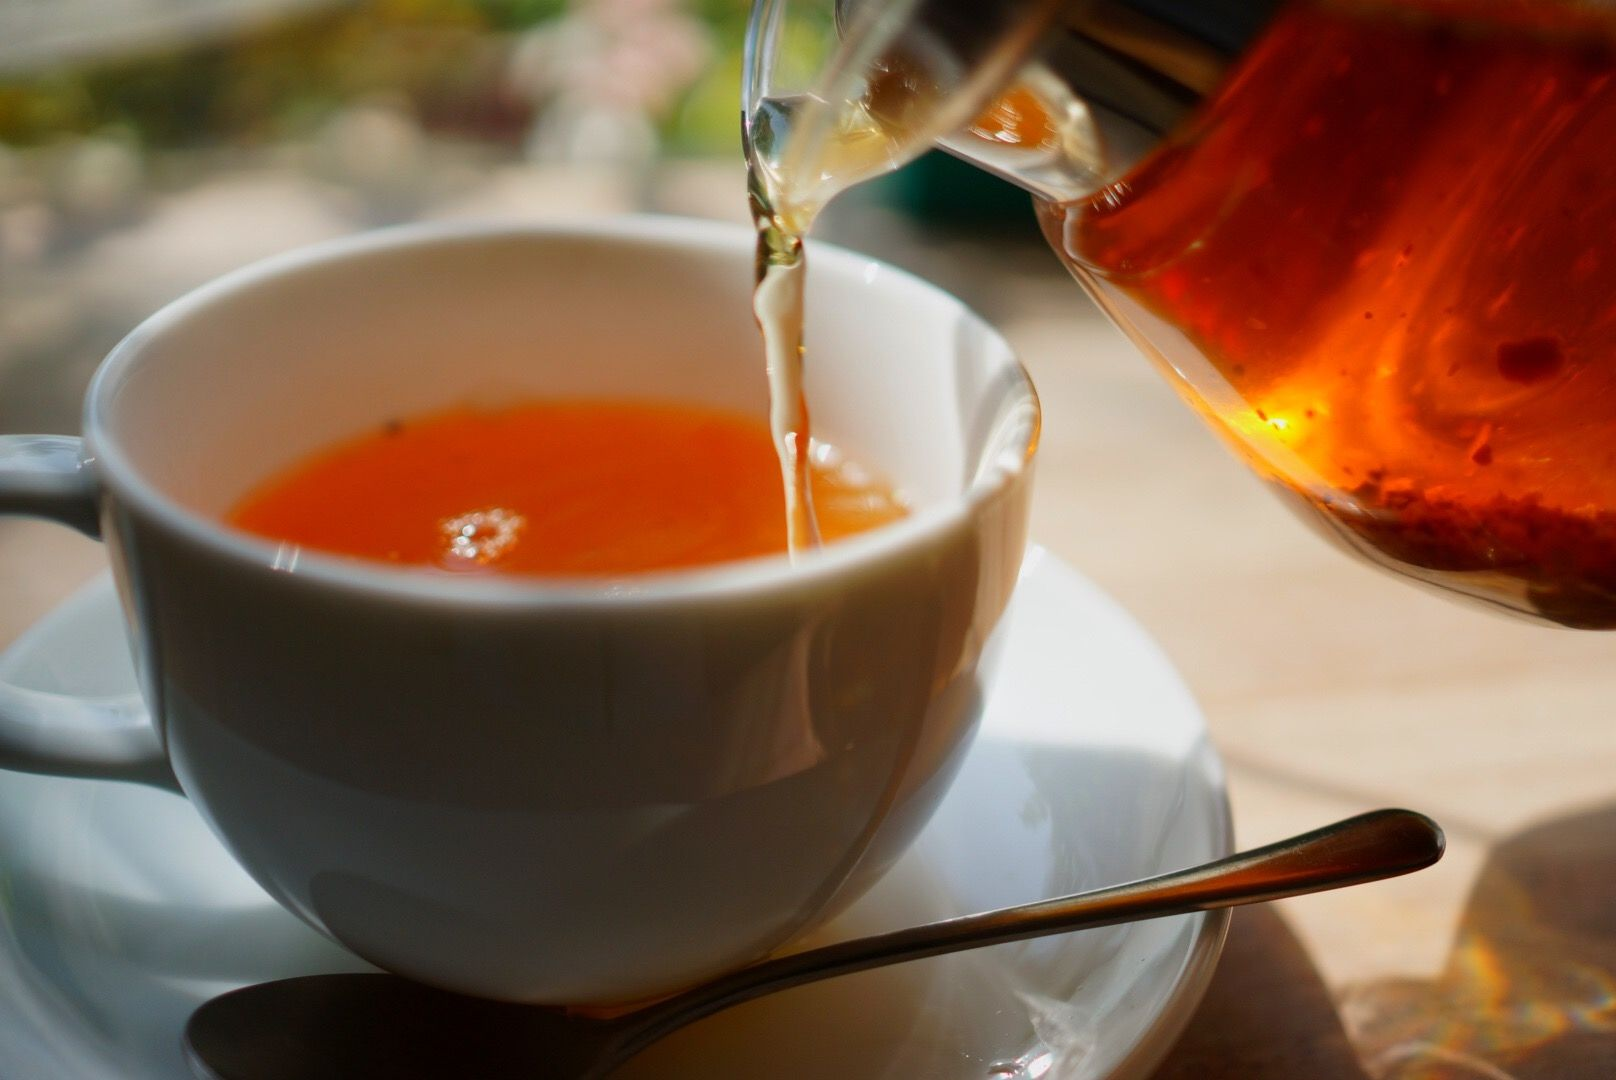 Gluten Free Brands And Flavors Of Hot Tea